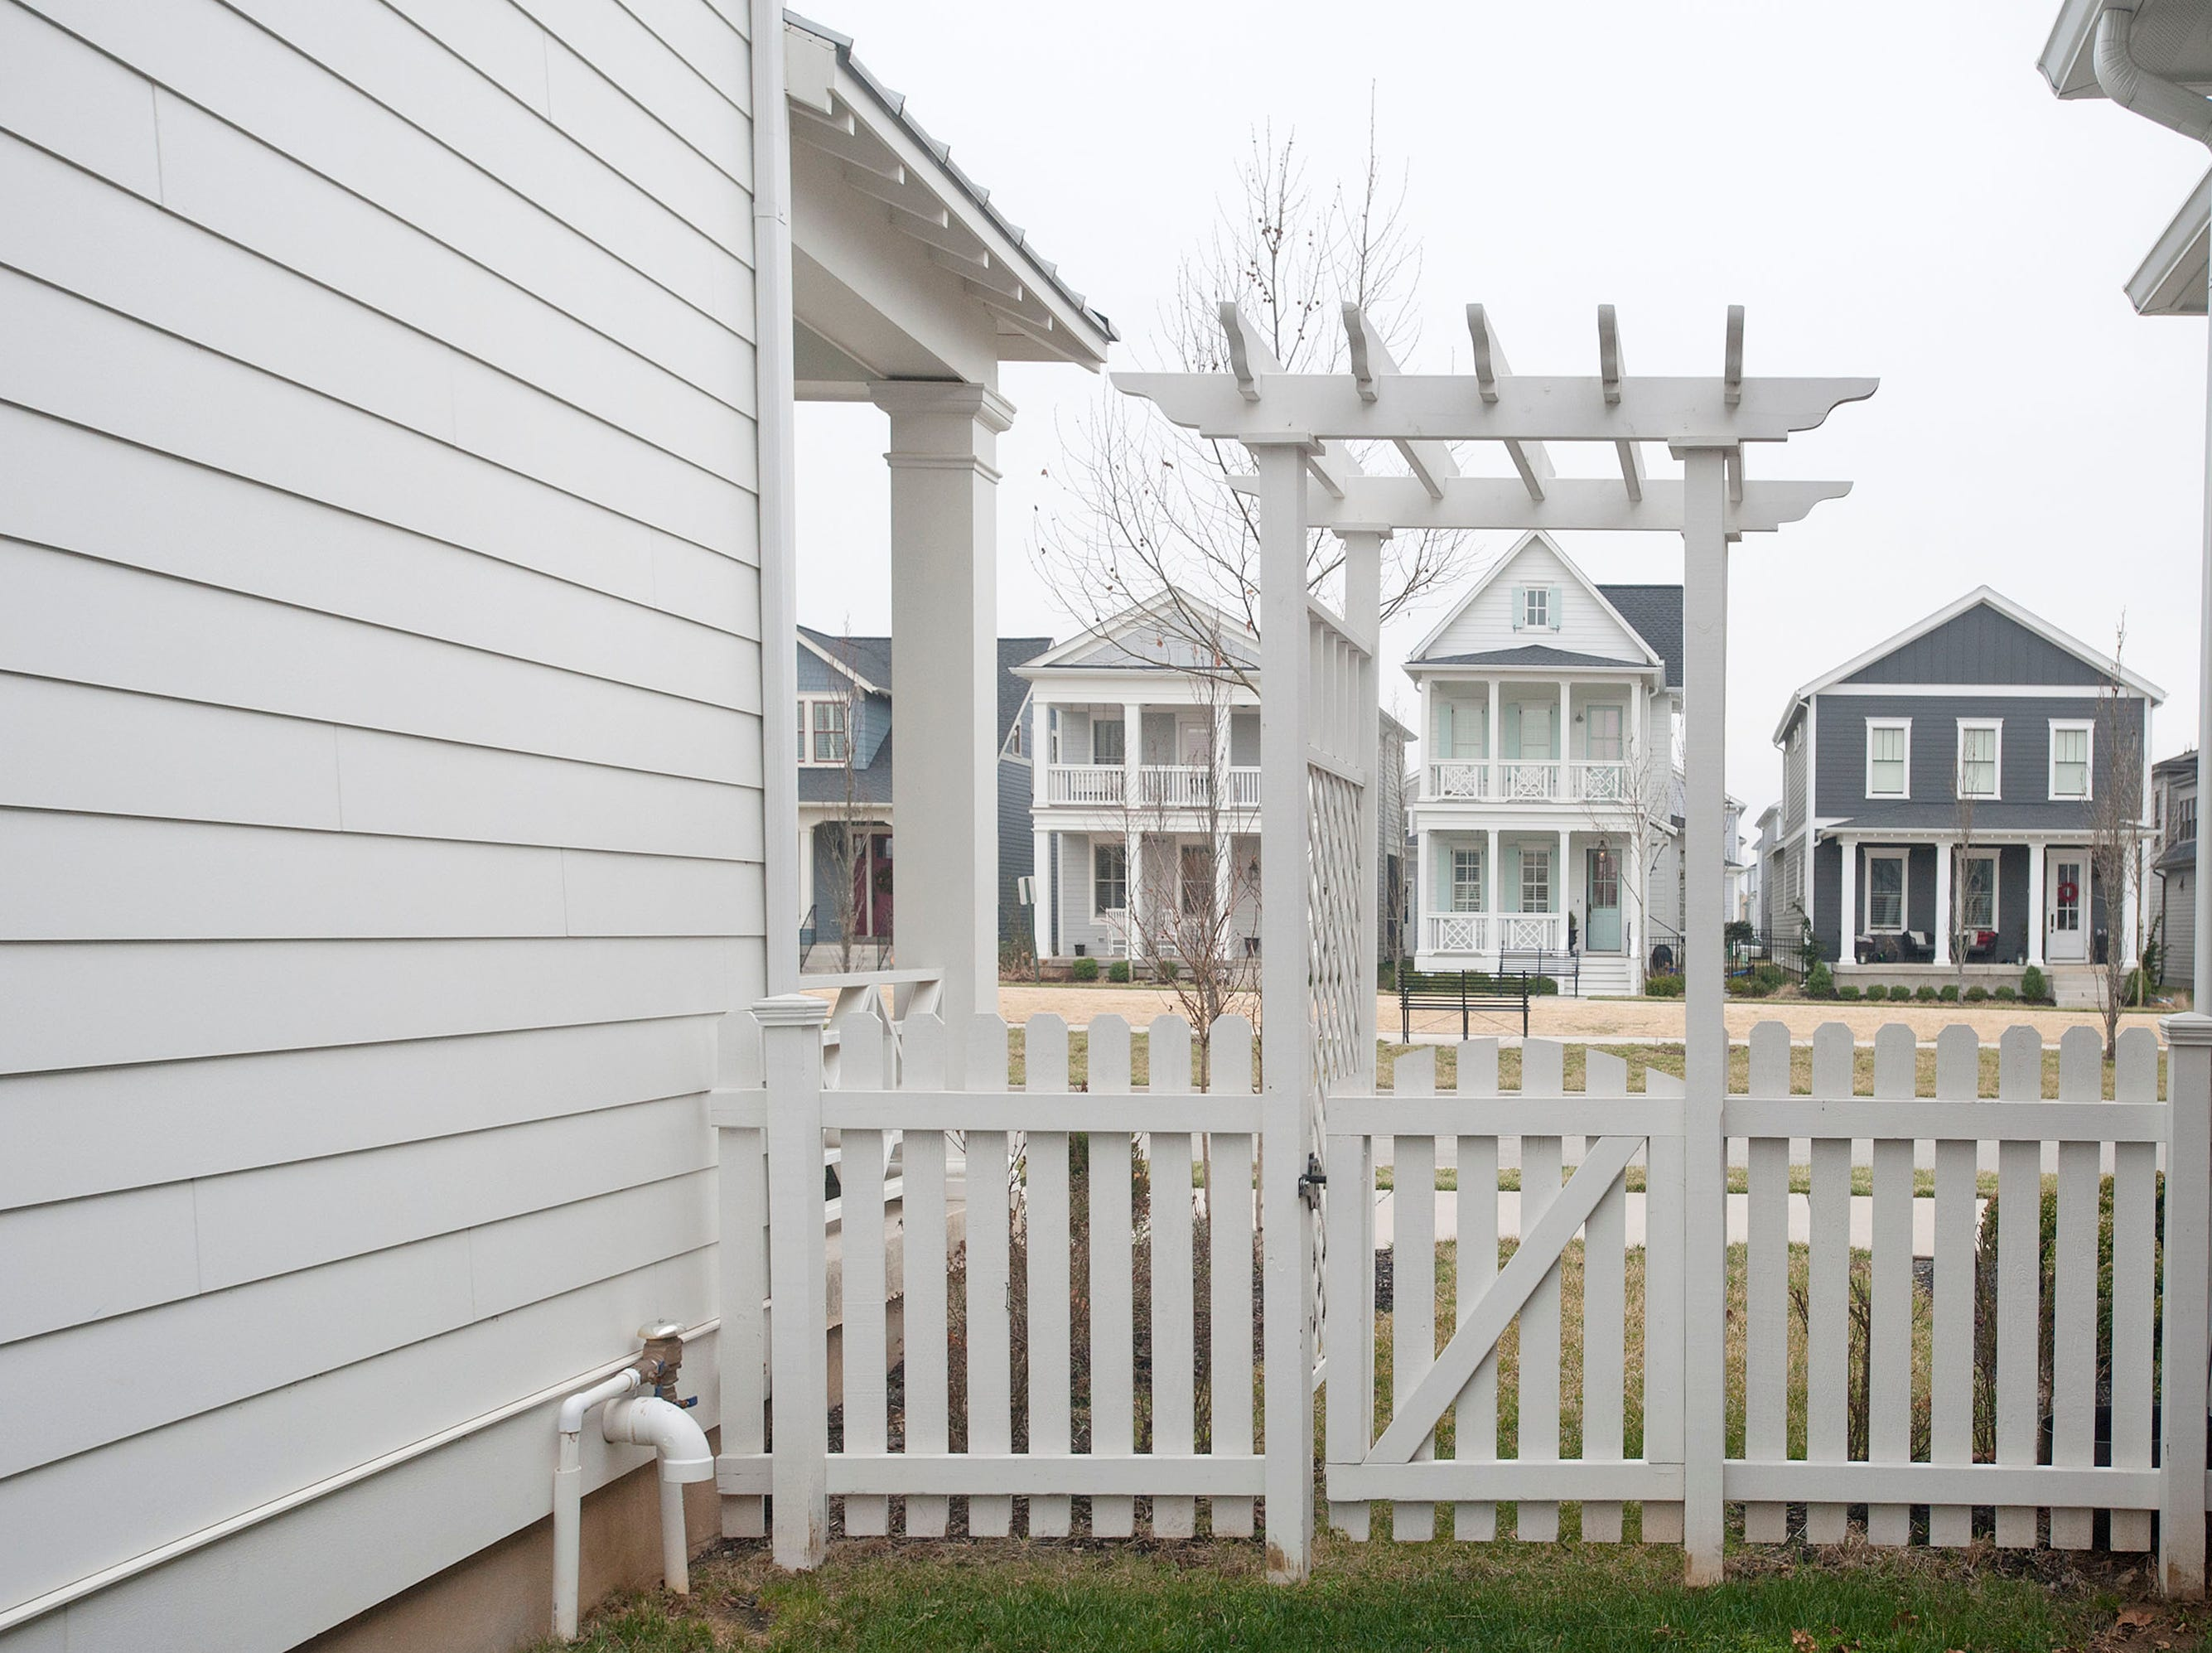 An arbor and picket fence separates the Hannah home (left) from its neighbor's in Norton Commons. 01 March 2019